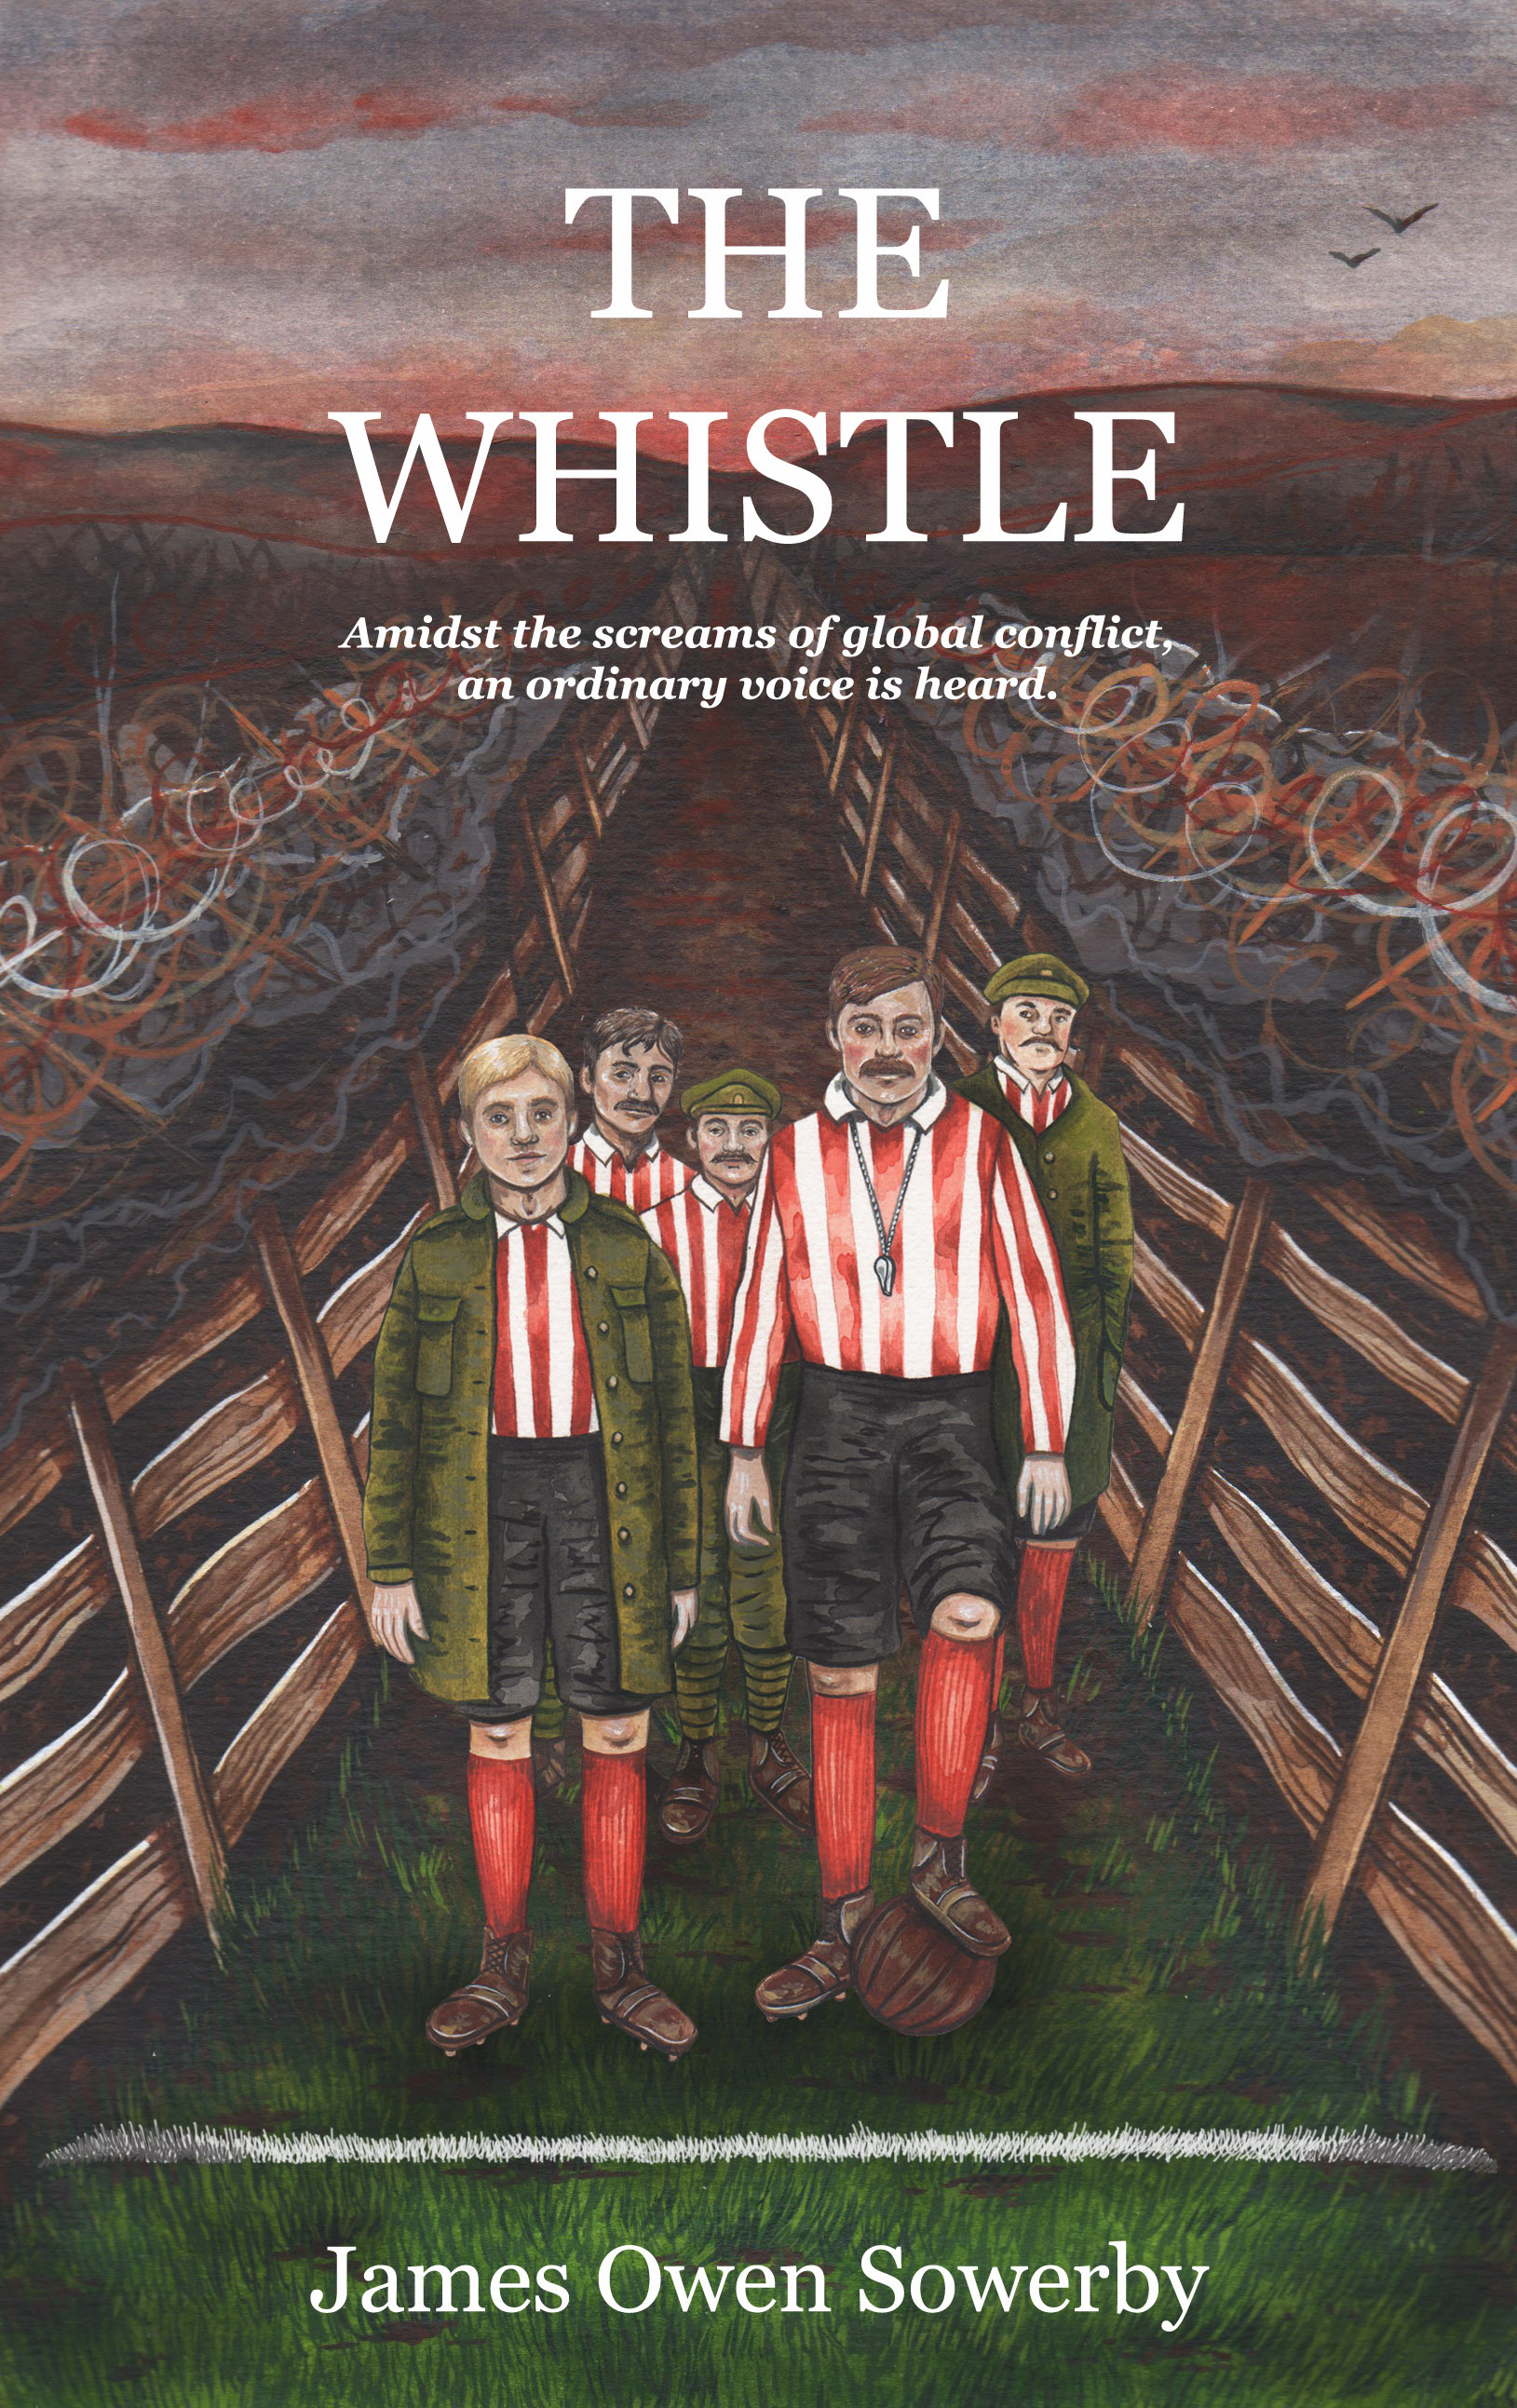 Cover of The Whistle by James Owen Sowerby. Illustration by Lilly Louise Allen.